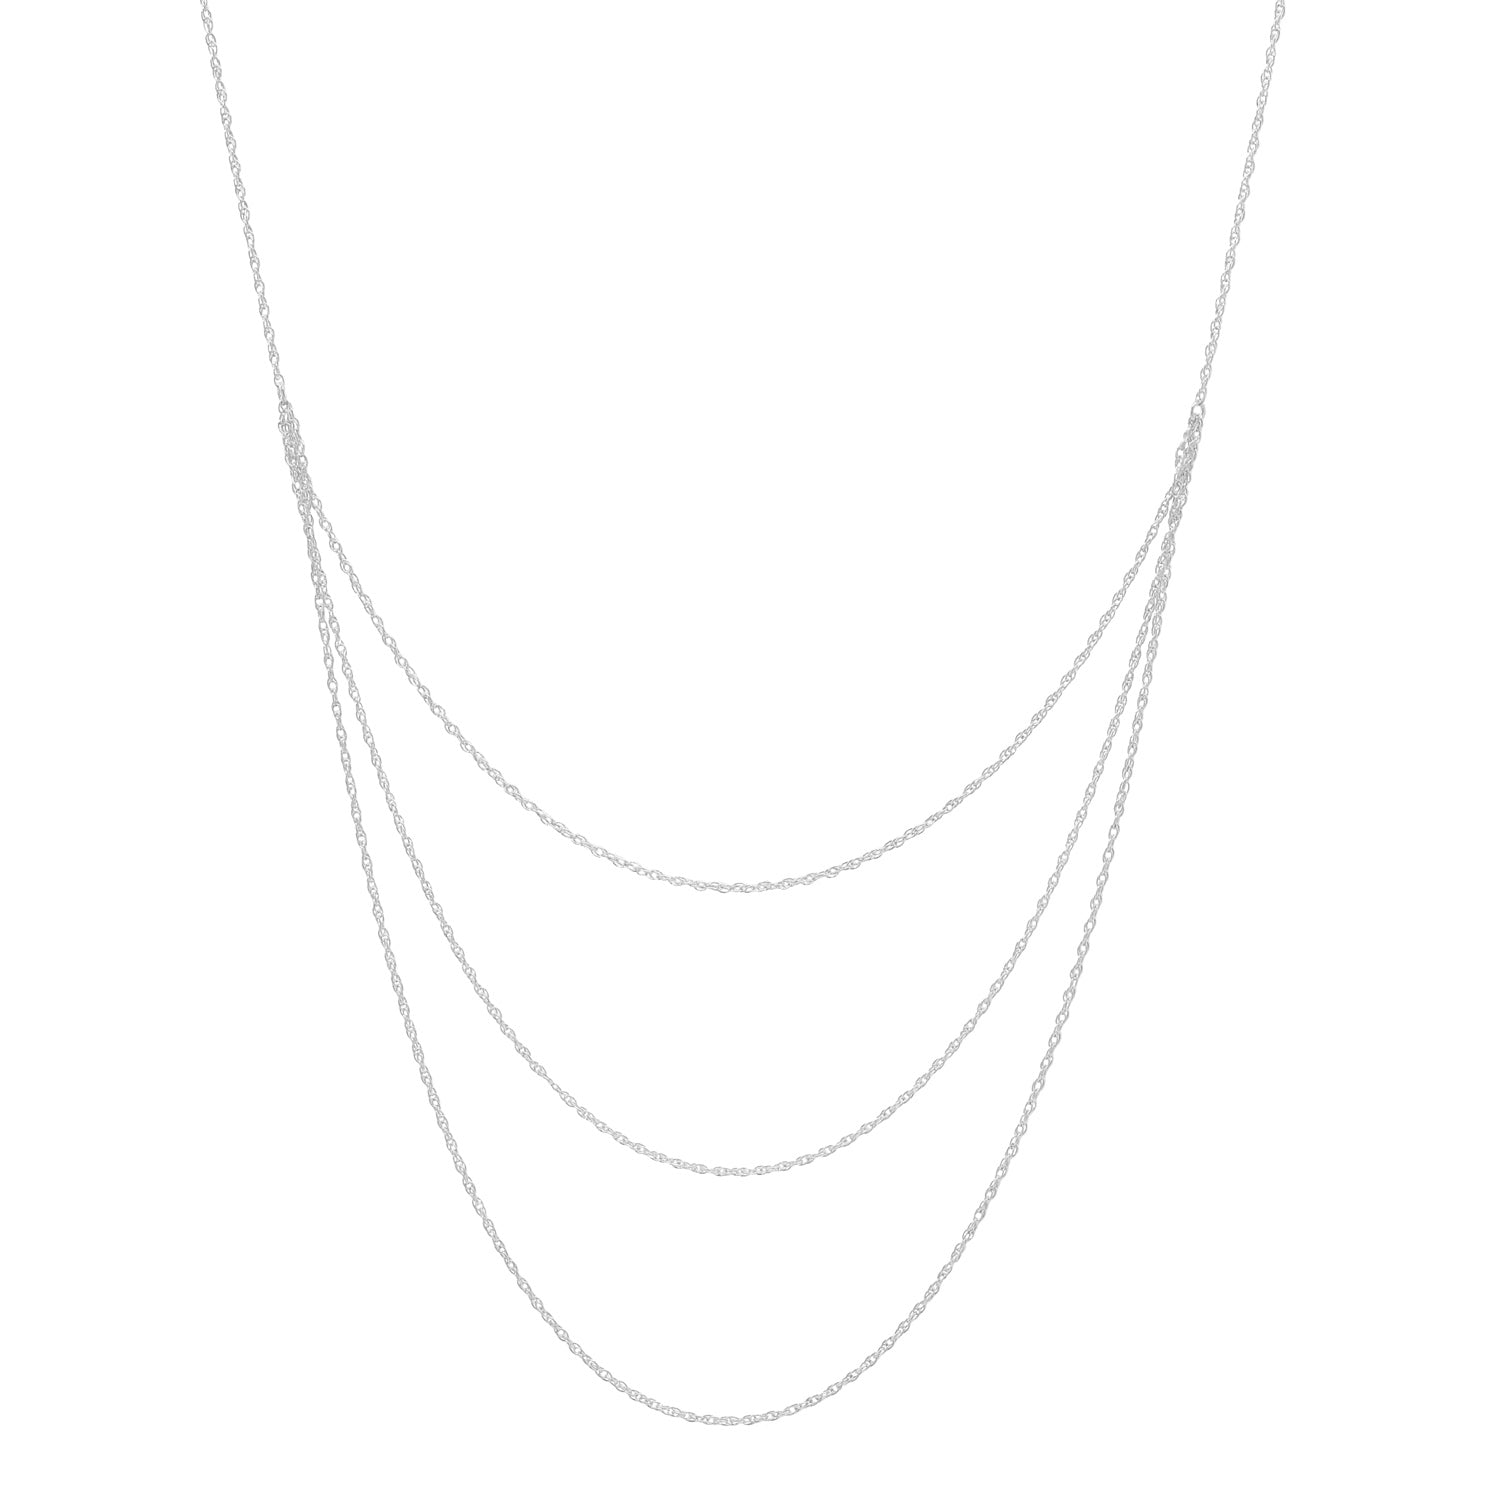 Triple Layer Rope Chain Necklace